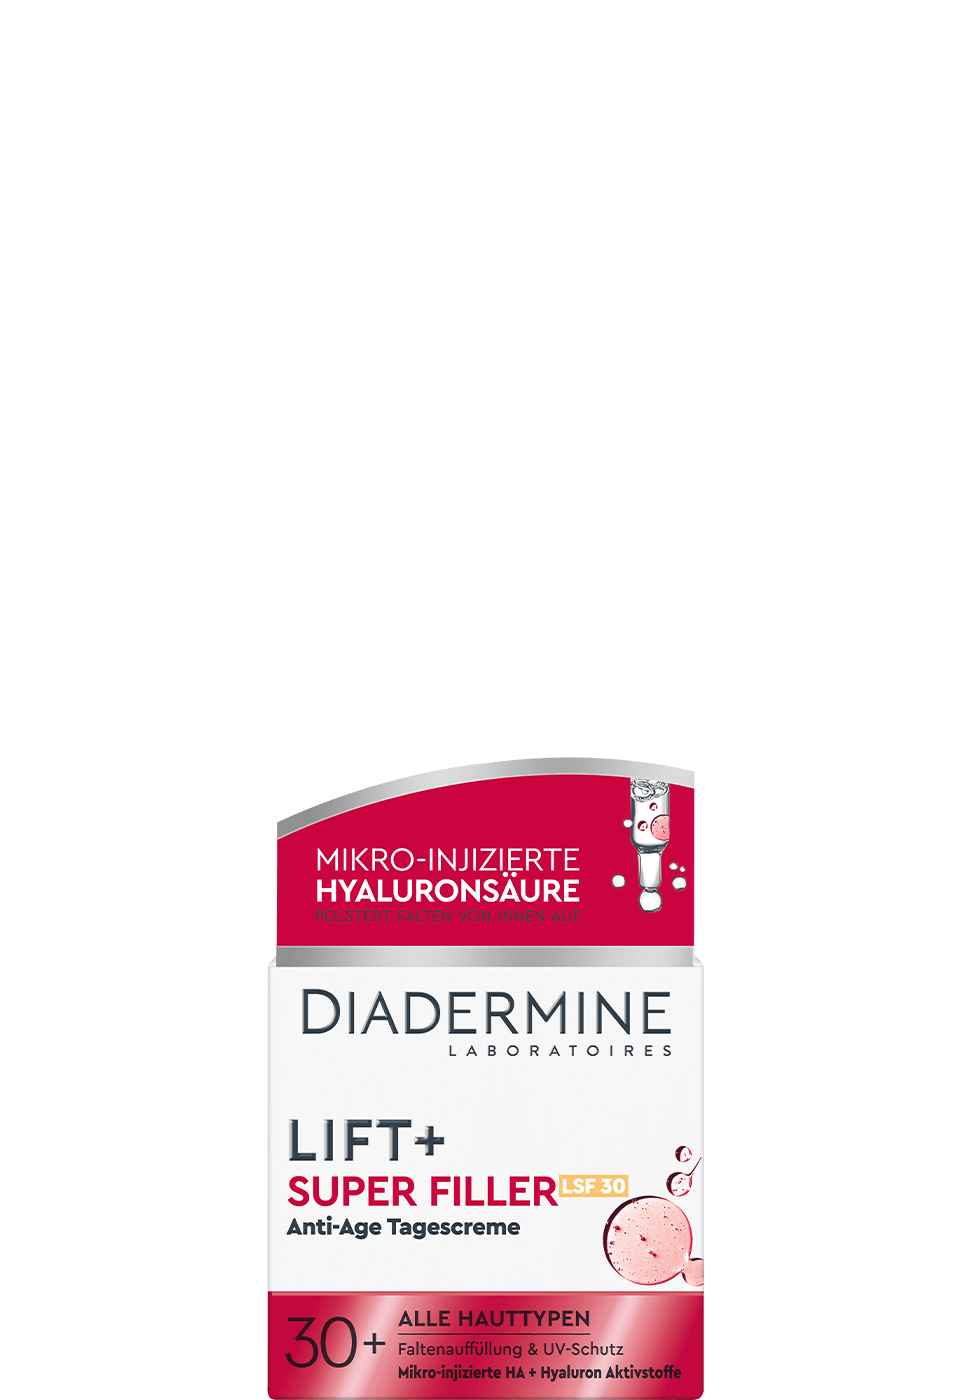 diadermine_de_lift_plus_super_filler_tagescreme_LSF30_970x1400